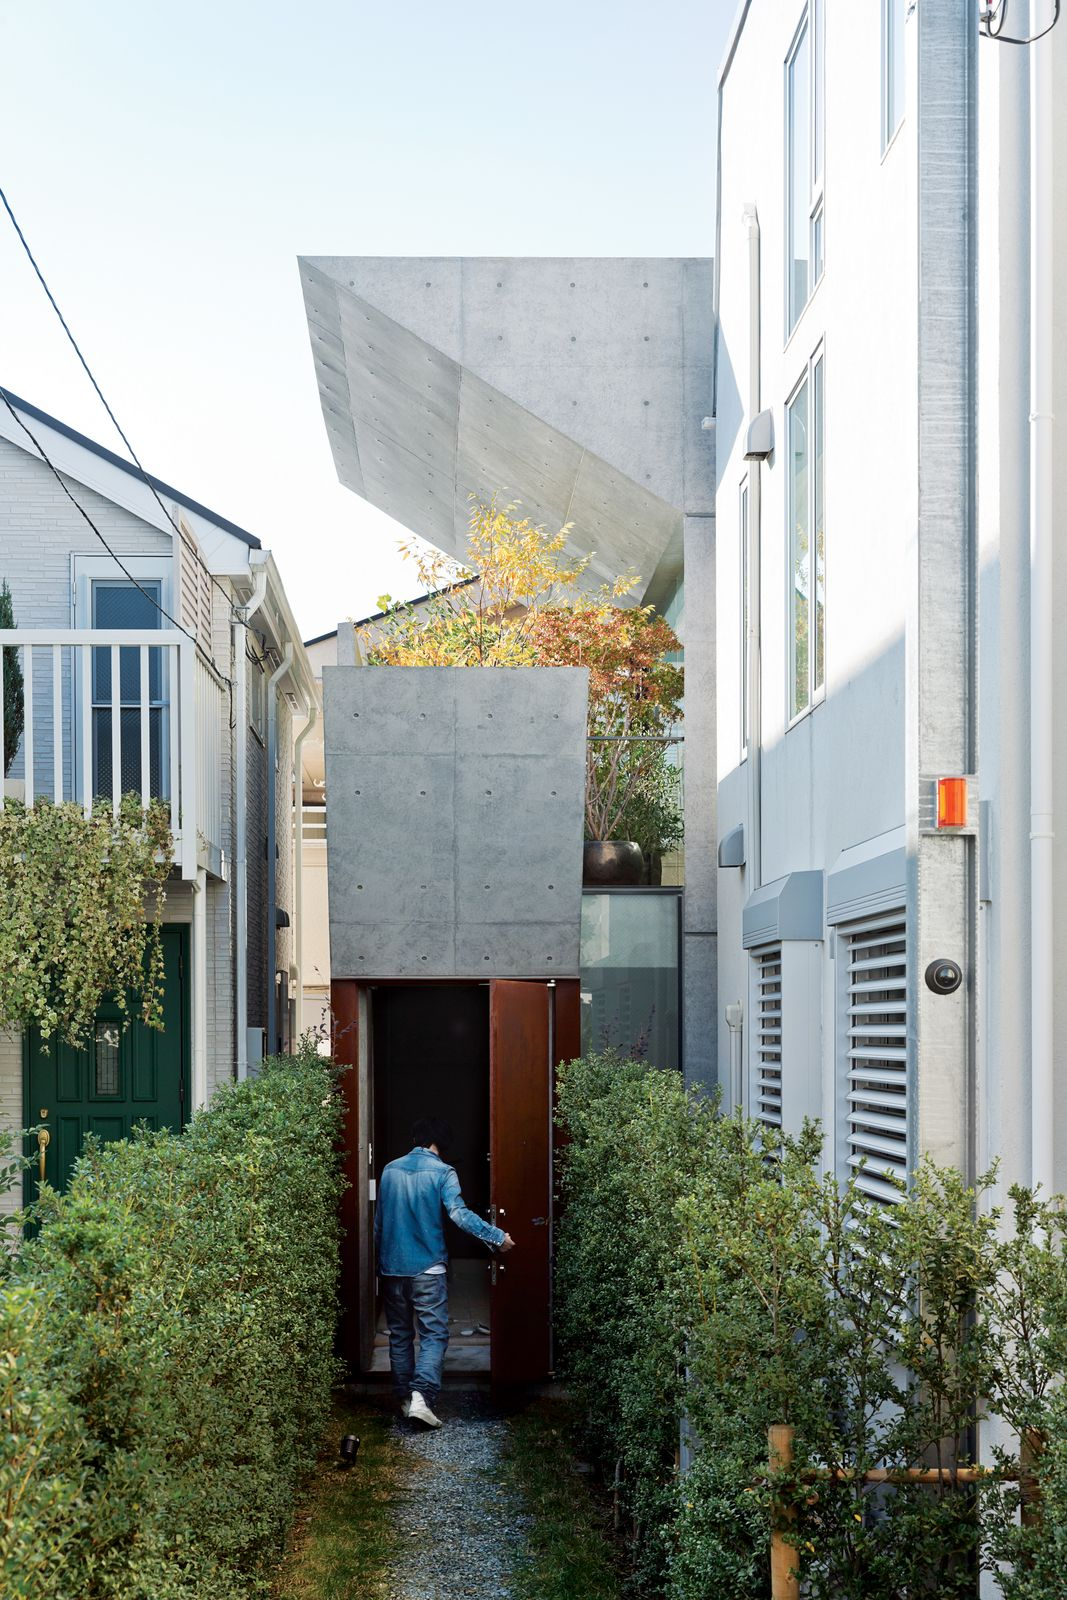 Open Plan Concrete Home In Japan Architecture Architecture Details Unusual Homes